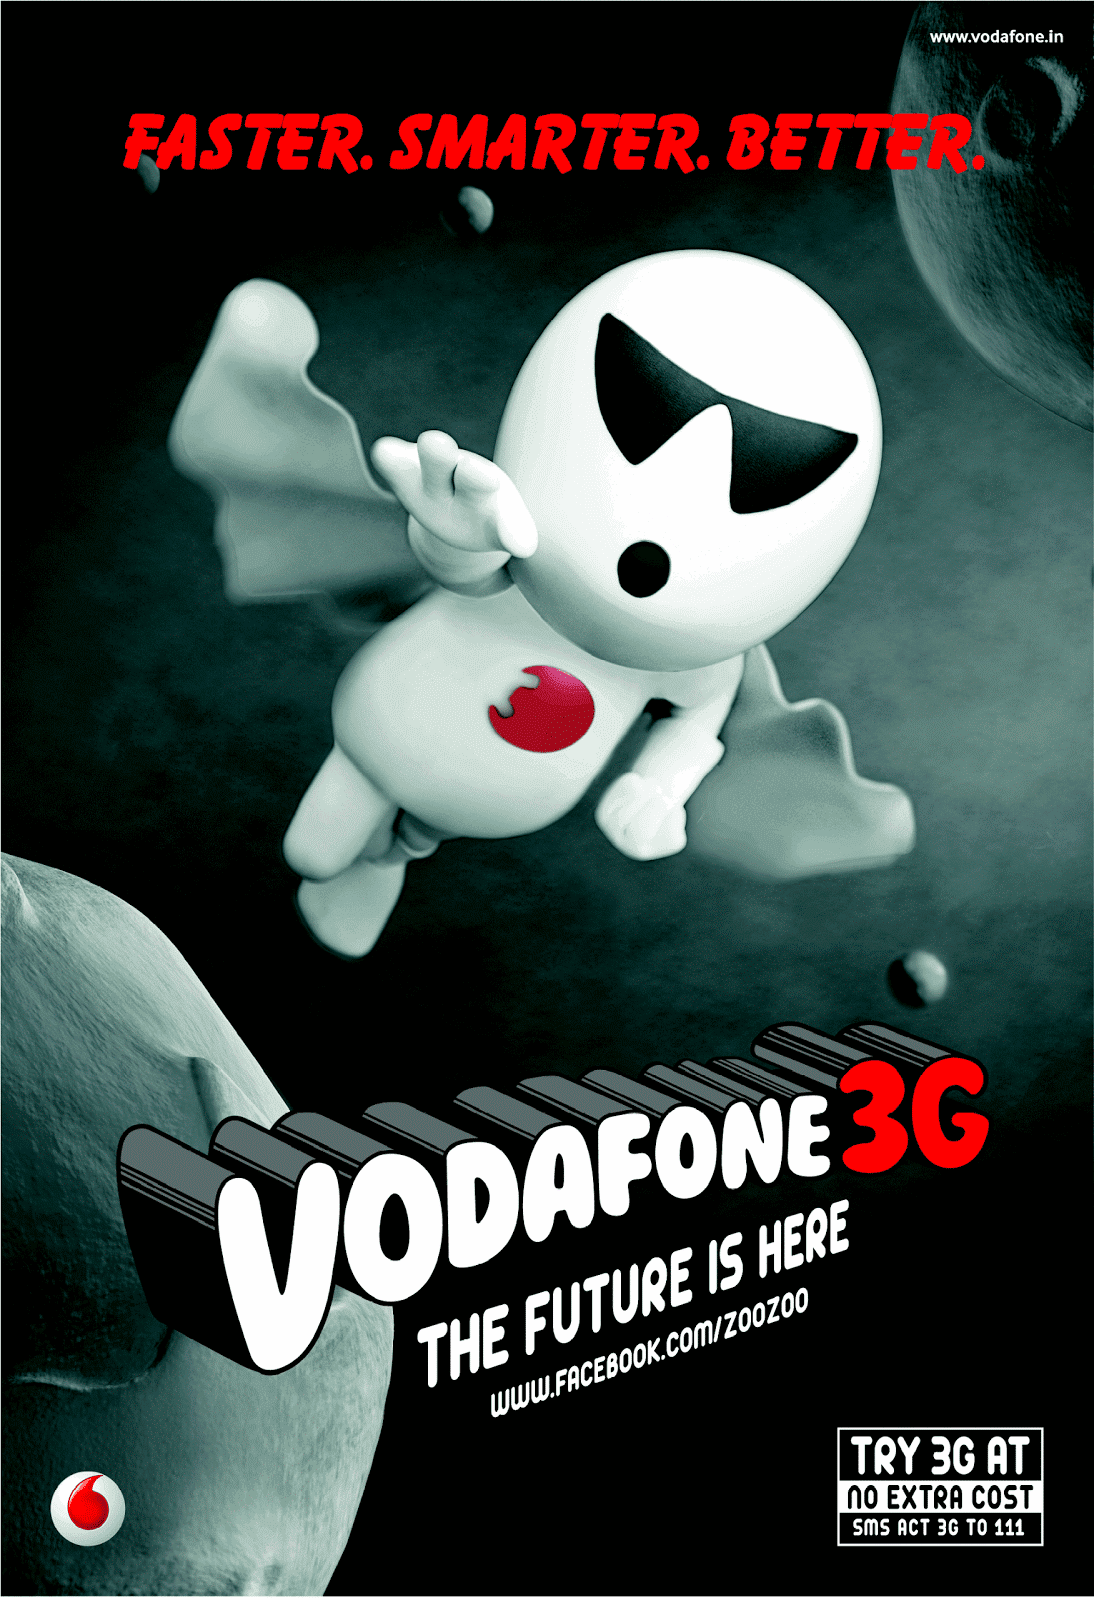 Hd wallpapers vodafone 3g - 3g wallpaper hd ...